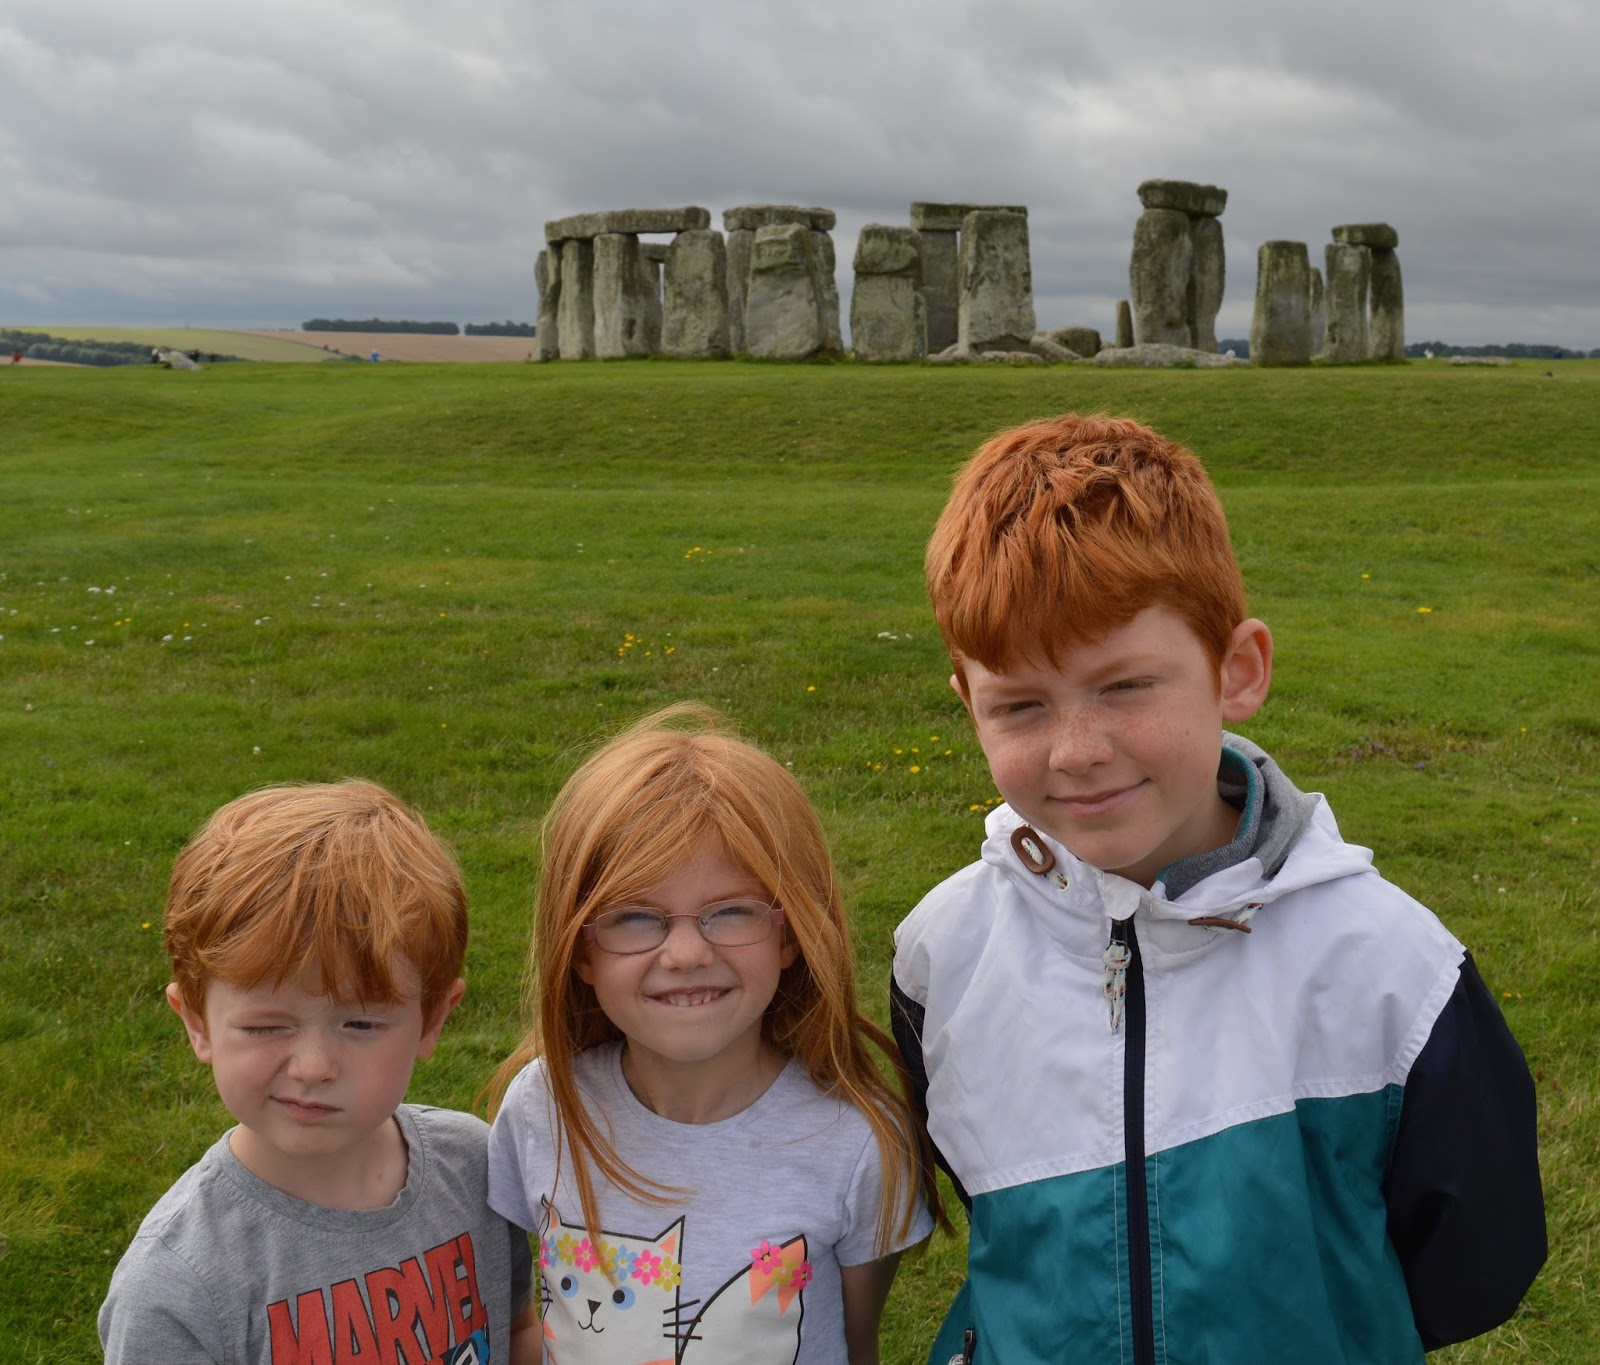 How to squeeze as many road trips into the year as possible without spending a fortune - visit Stonehenge